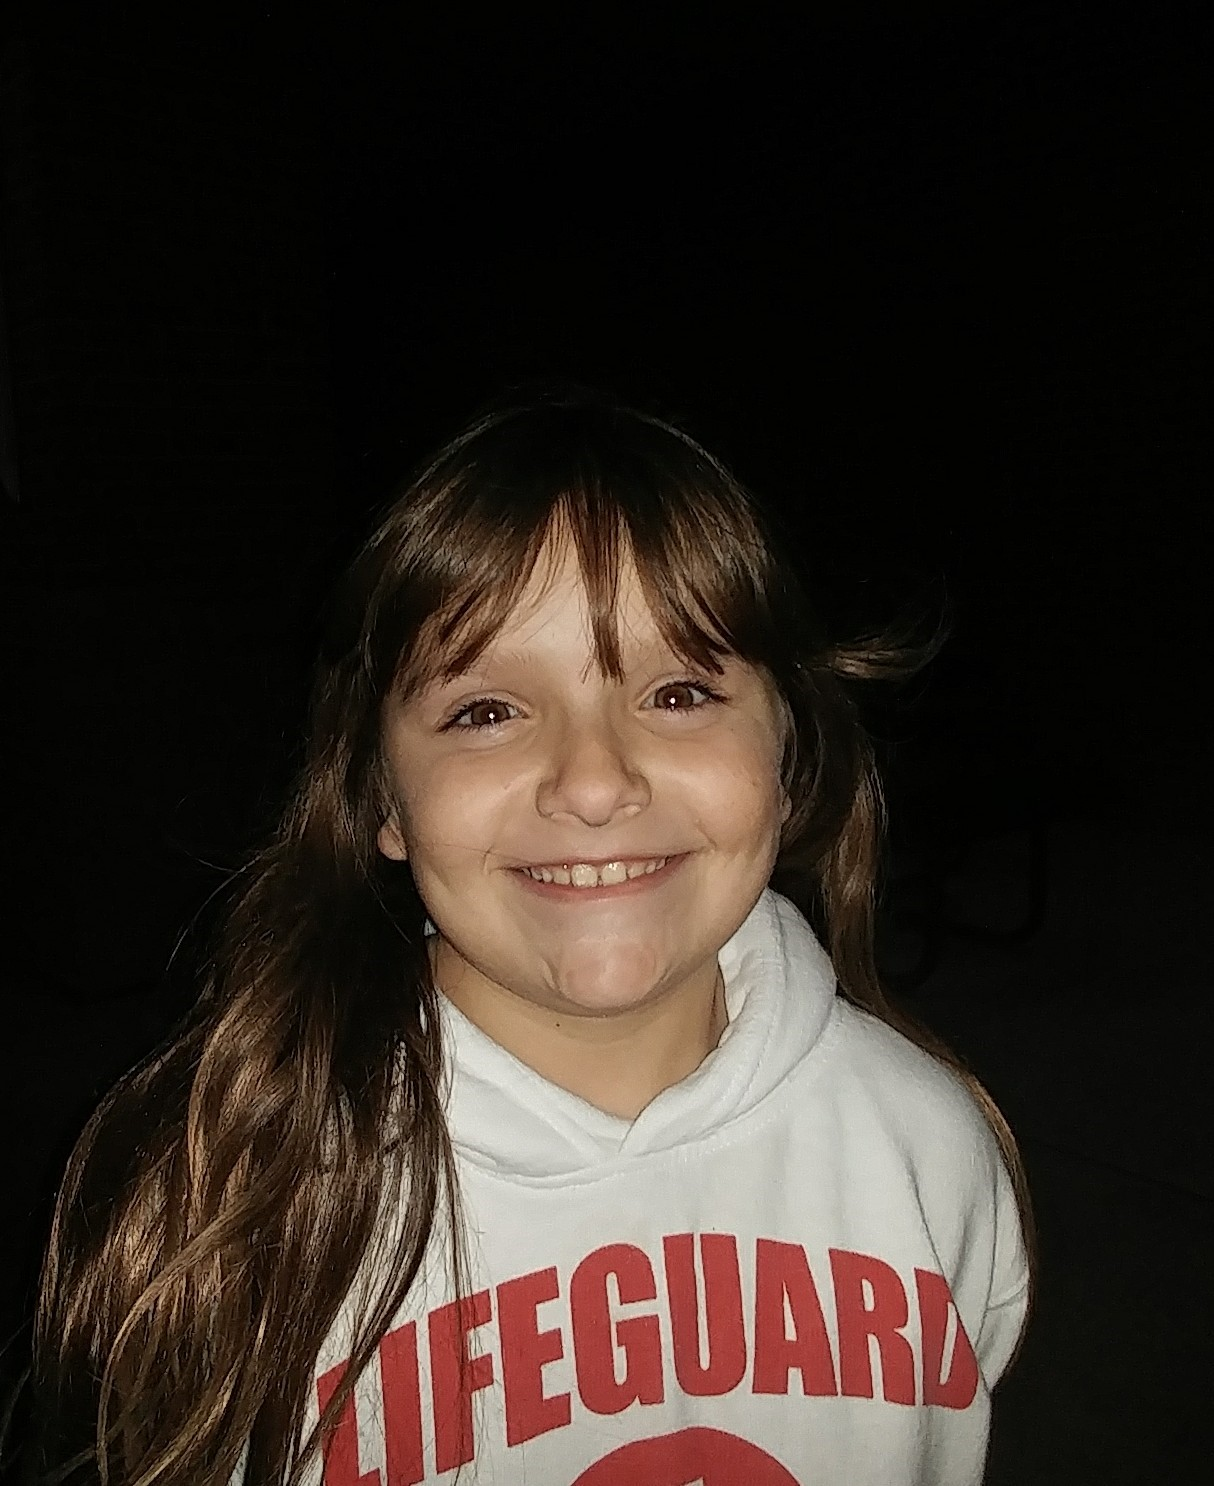 I would like to receive the gift of giving blankets and food to homeless people.  Molly  Age 9